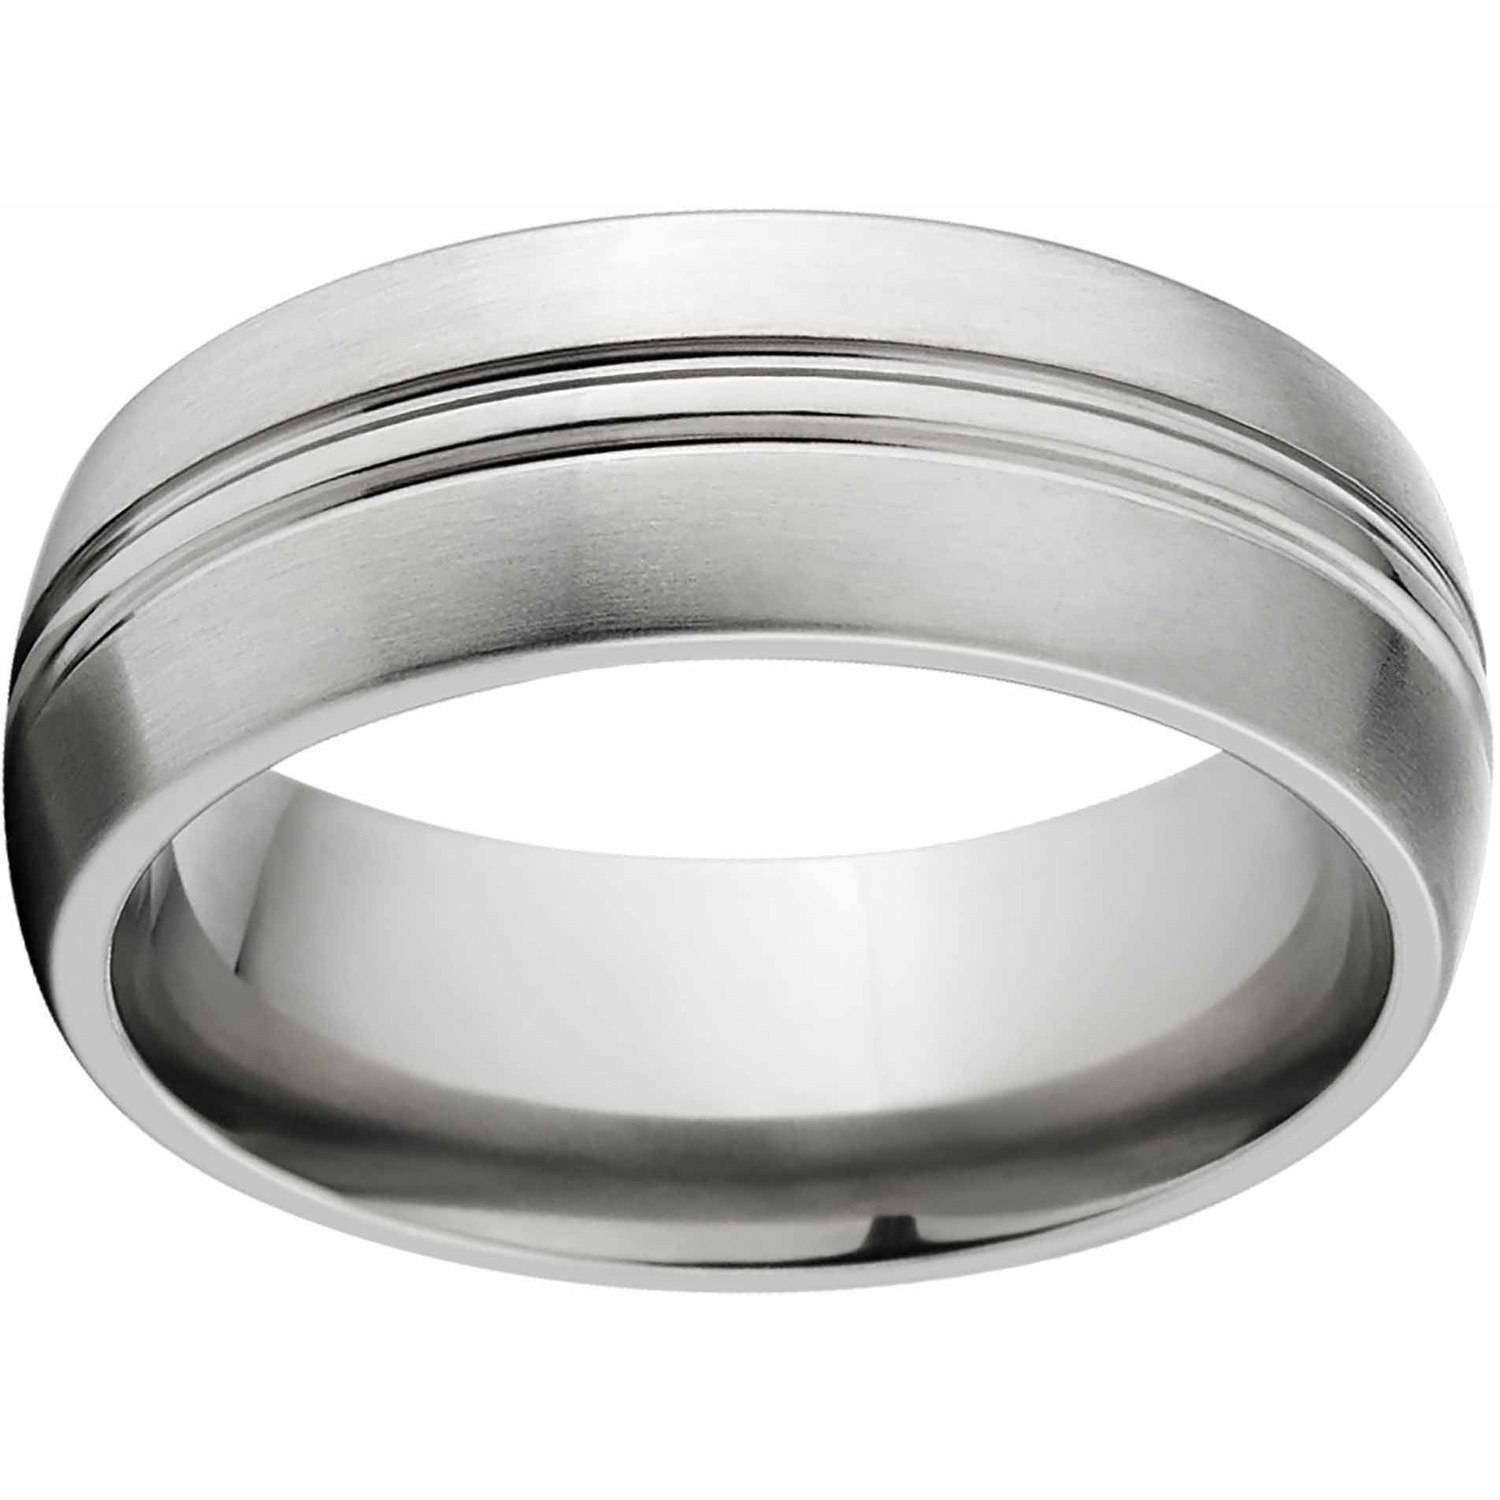 Brushed 8mm Titanium Wedding Band with Comfort Fit Design